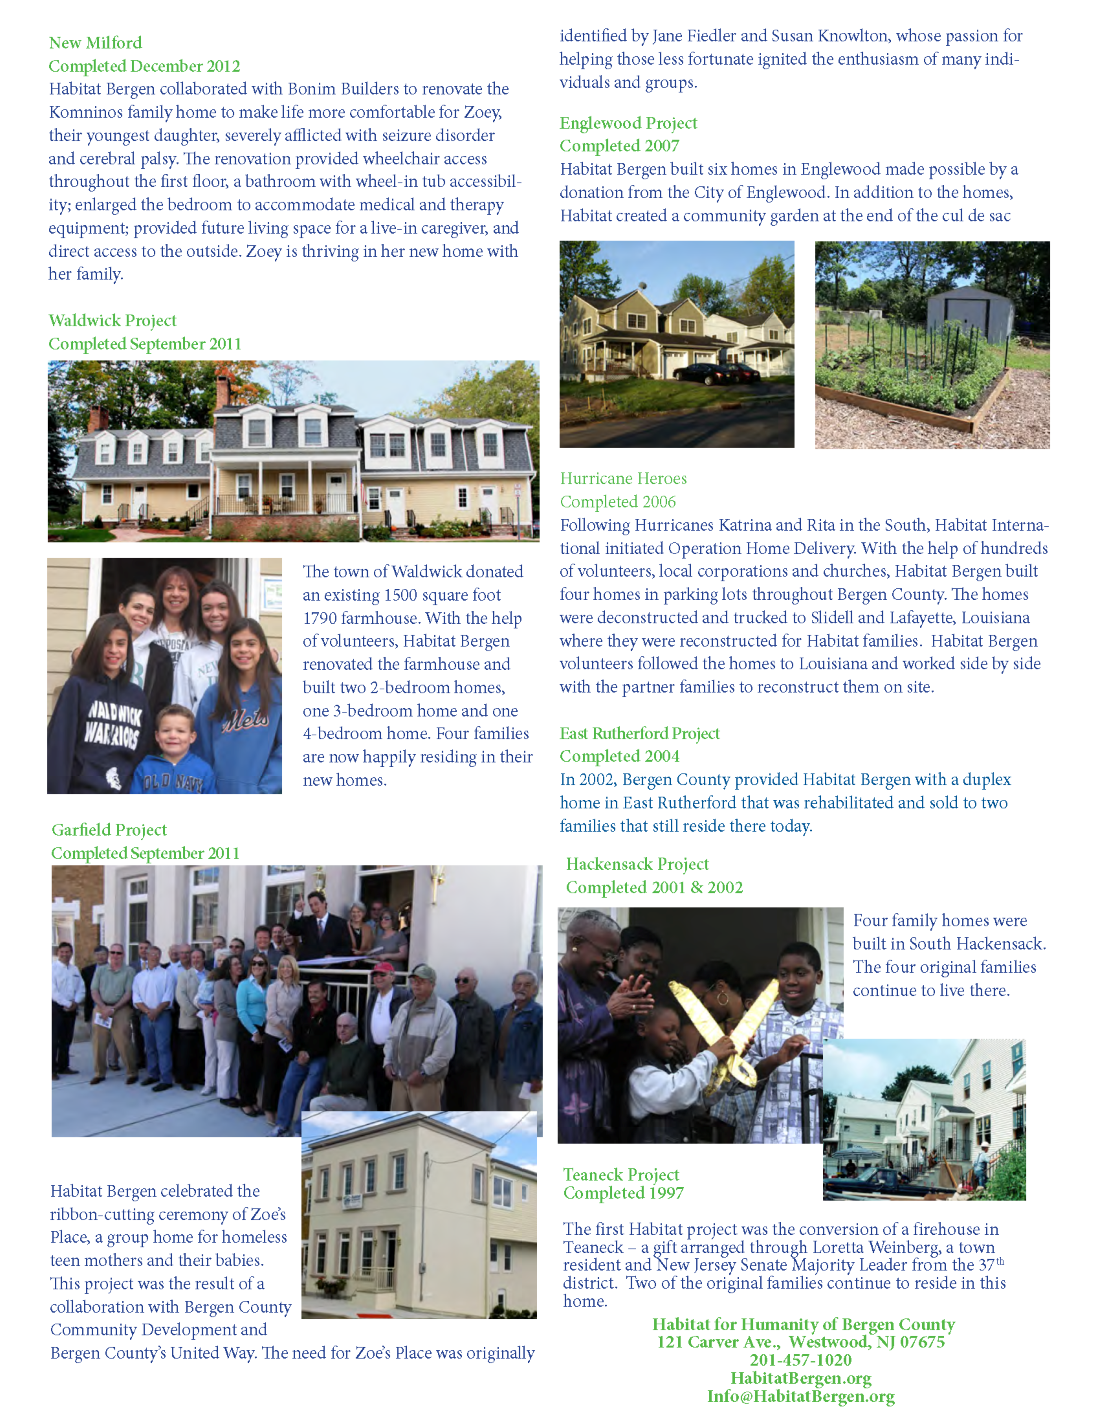 habitat_bergen_history_of_projects_handout_png_page_2_resized.png